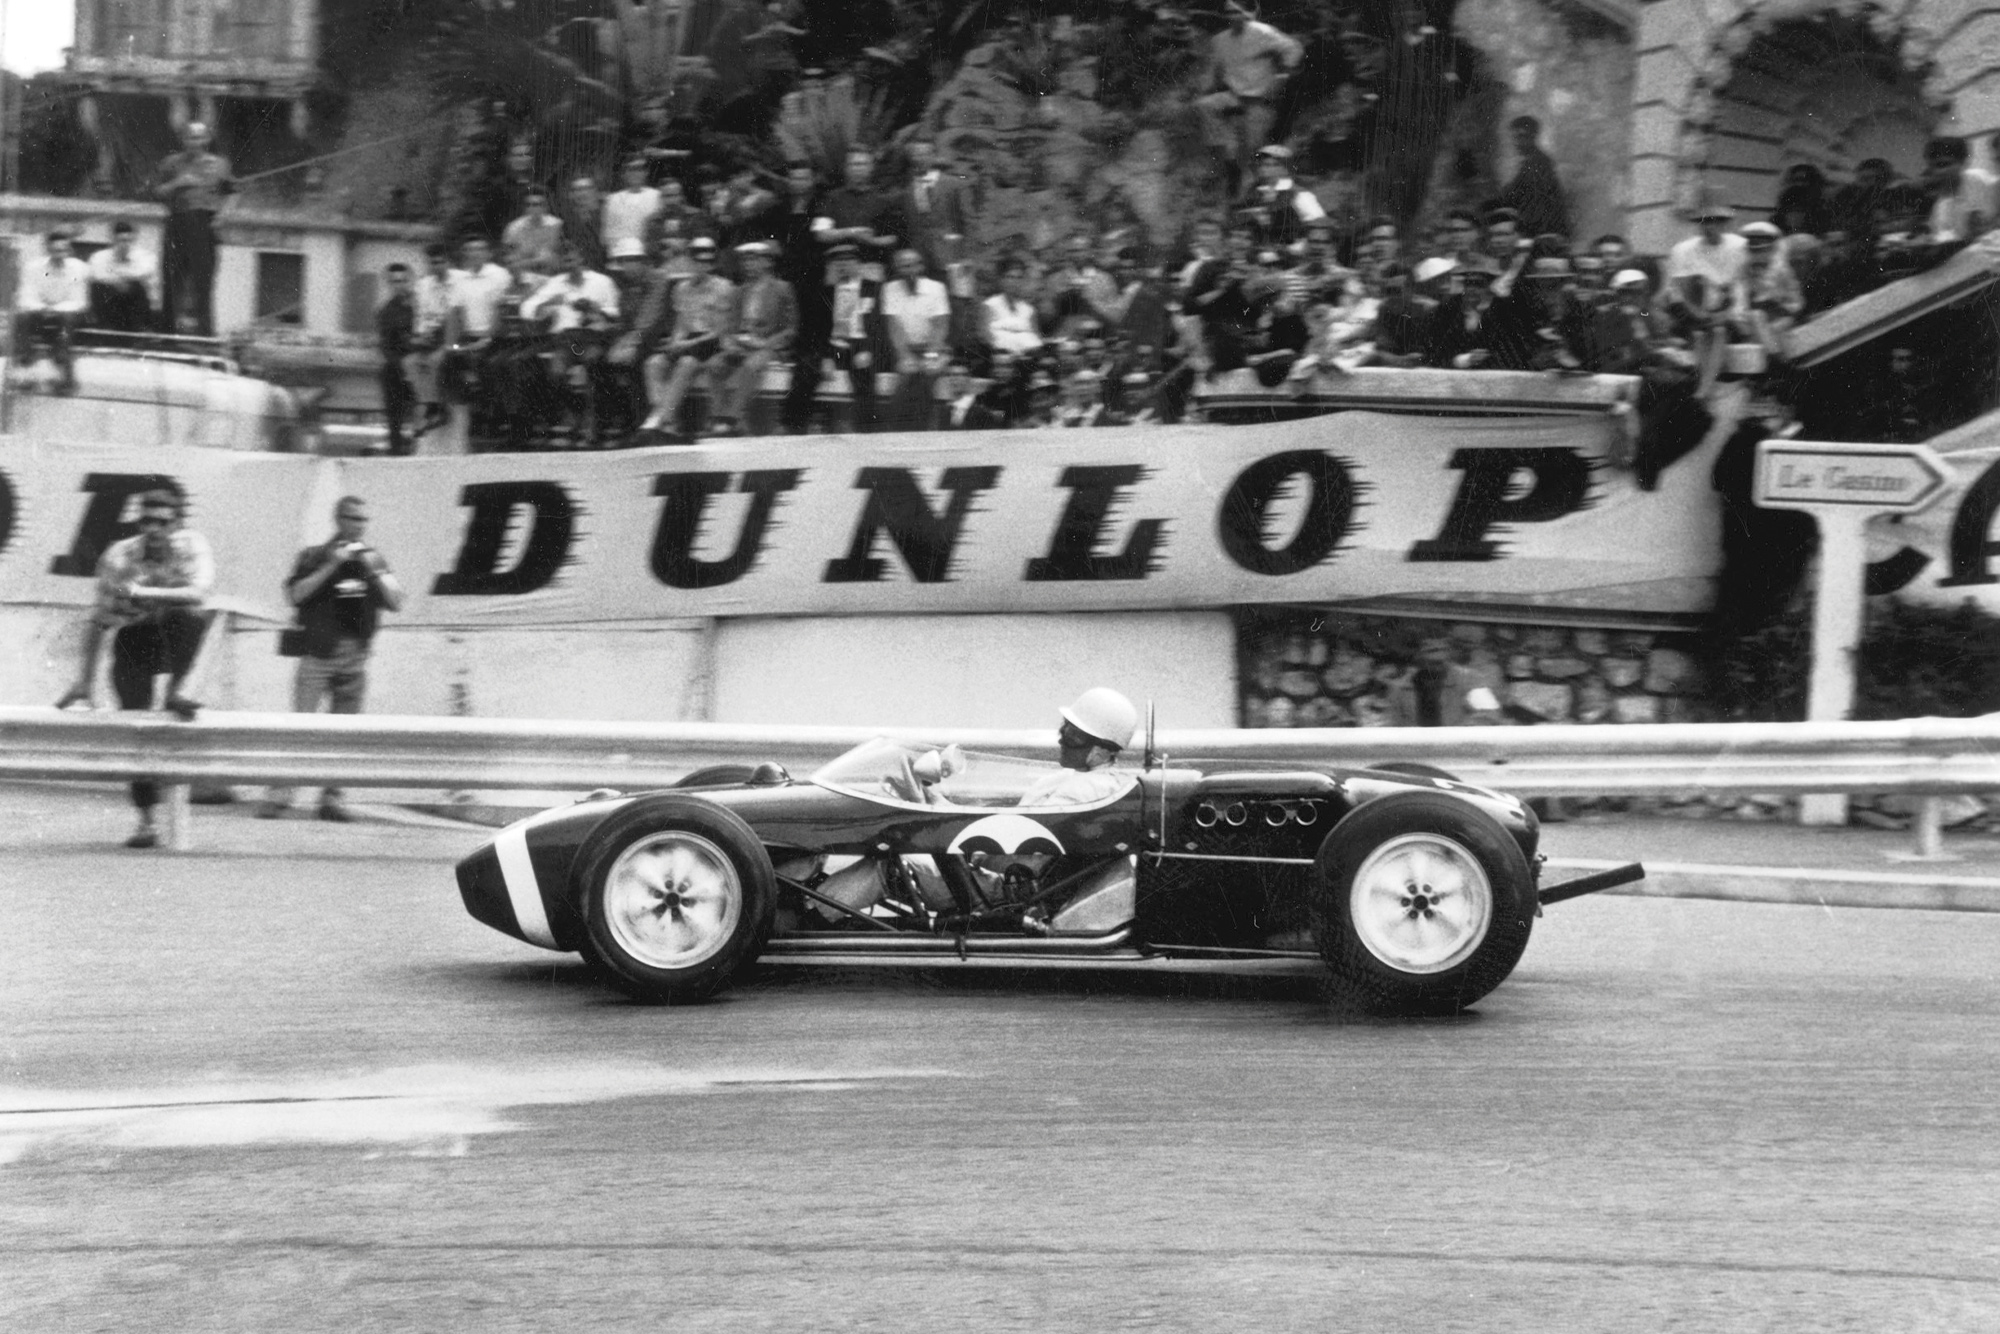 Stirling Moss in the Lotus 18 with side panels removed for cooling at Monaco in 1961